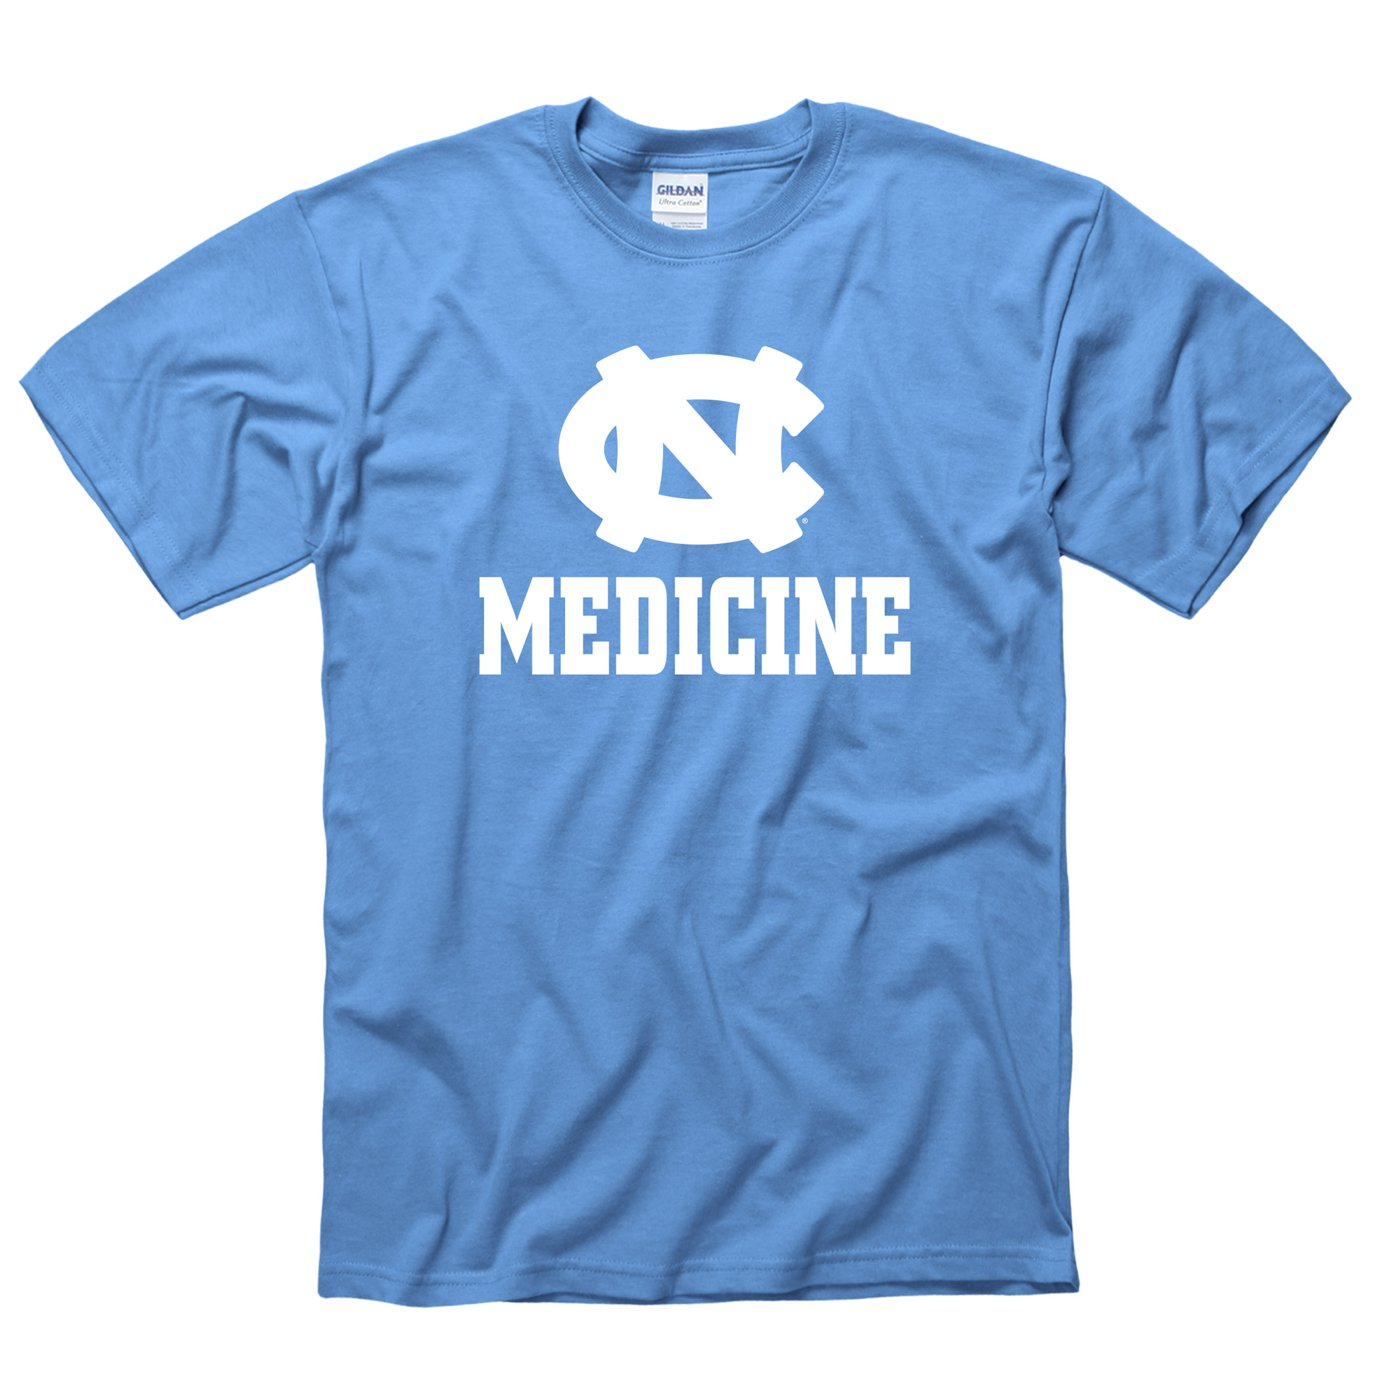 johnny t shirt north carolina tar heels school of